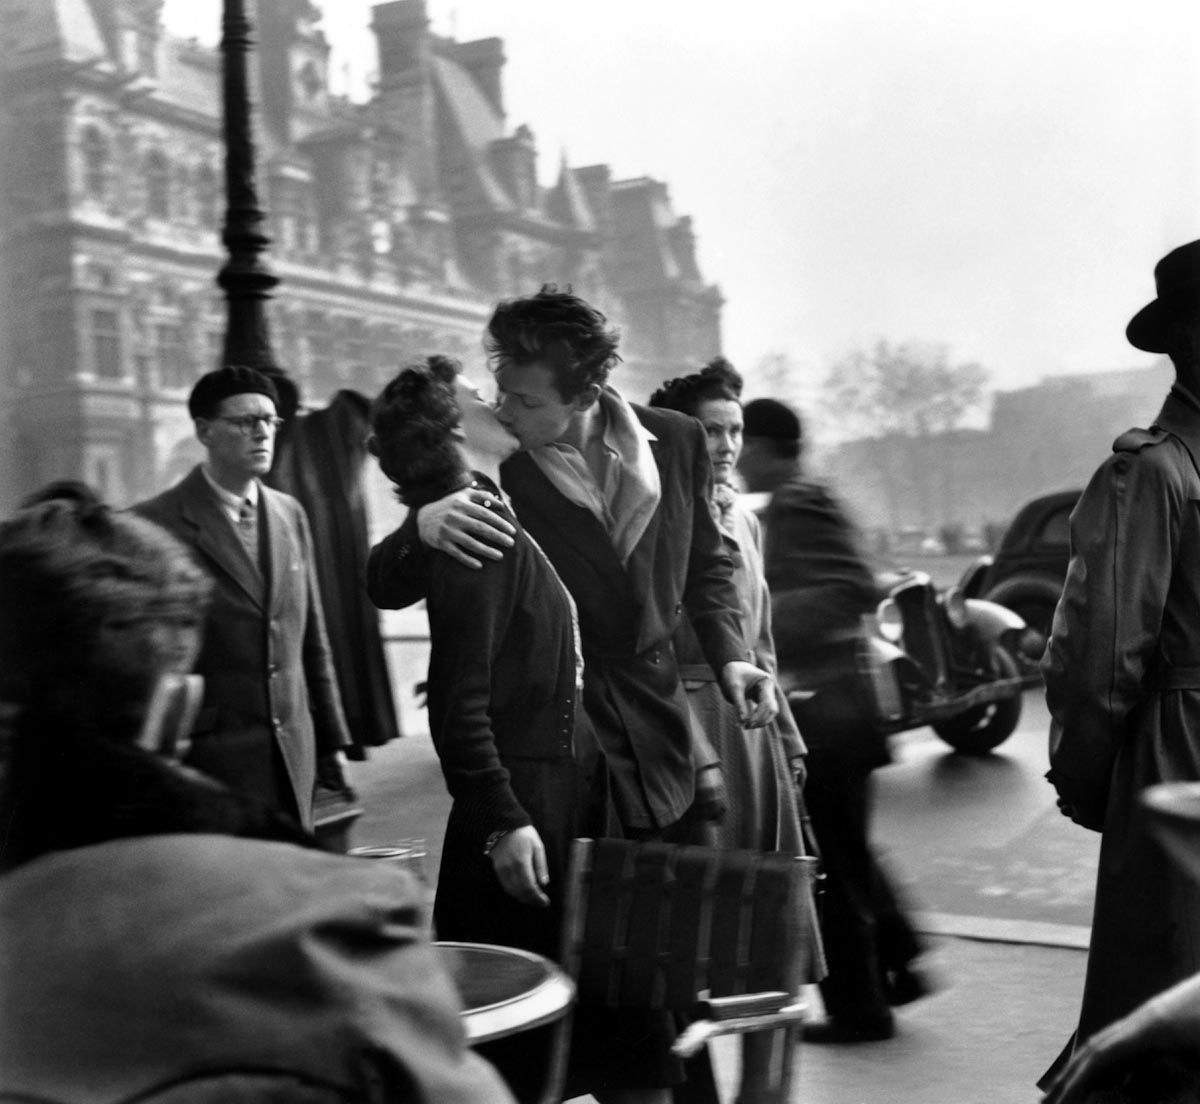 Robert Doisneau Kiss By The Hotel De Ville 1950 Paris France